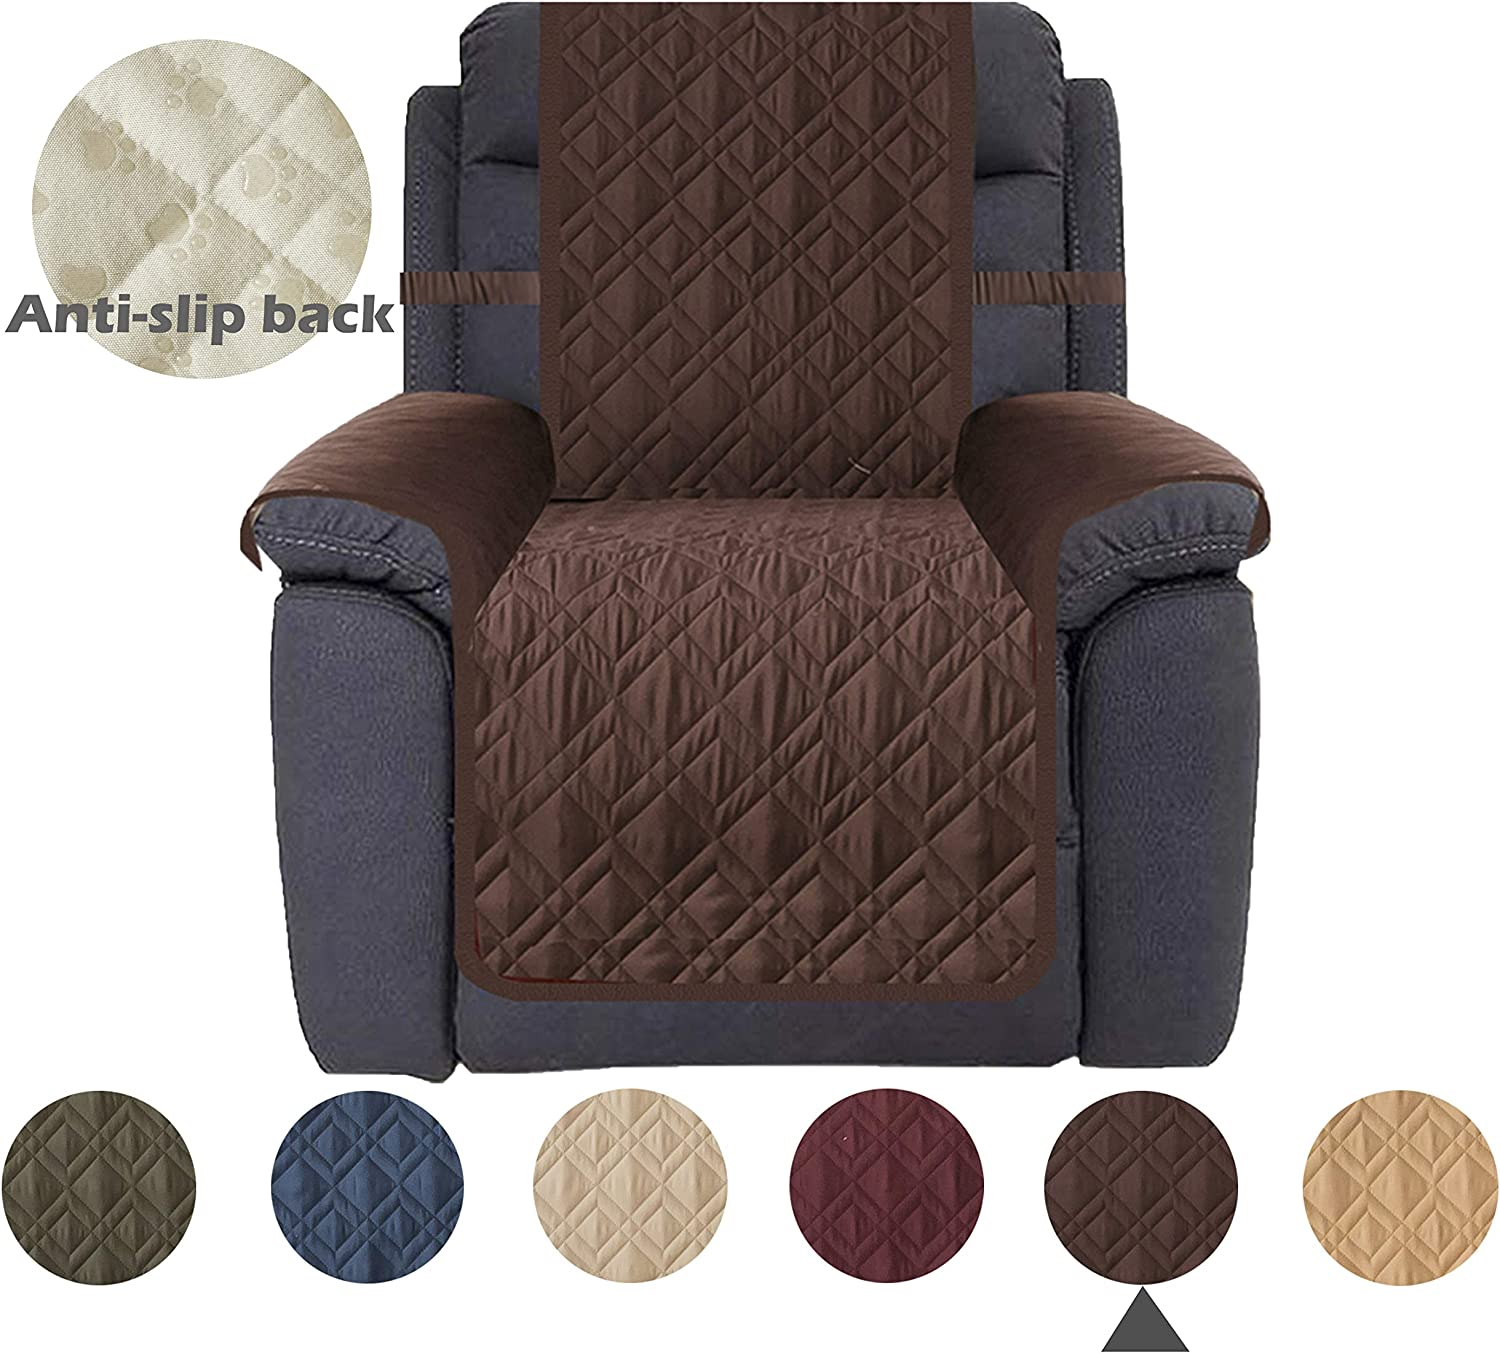 Ameritex Waterproof Nonslip Recliner Cover Stay in Place, Dog Chair Cover Furniture Protector, Ideal Recliner Slipcovers for Pets and Kids (30'', Chocolate)